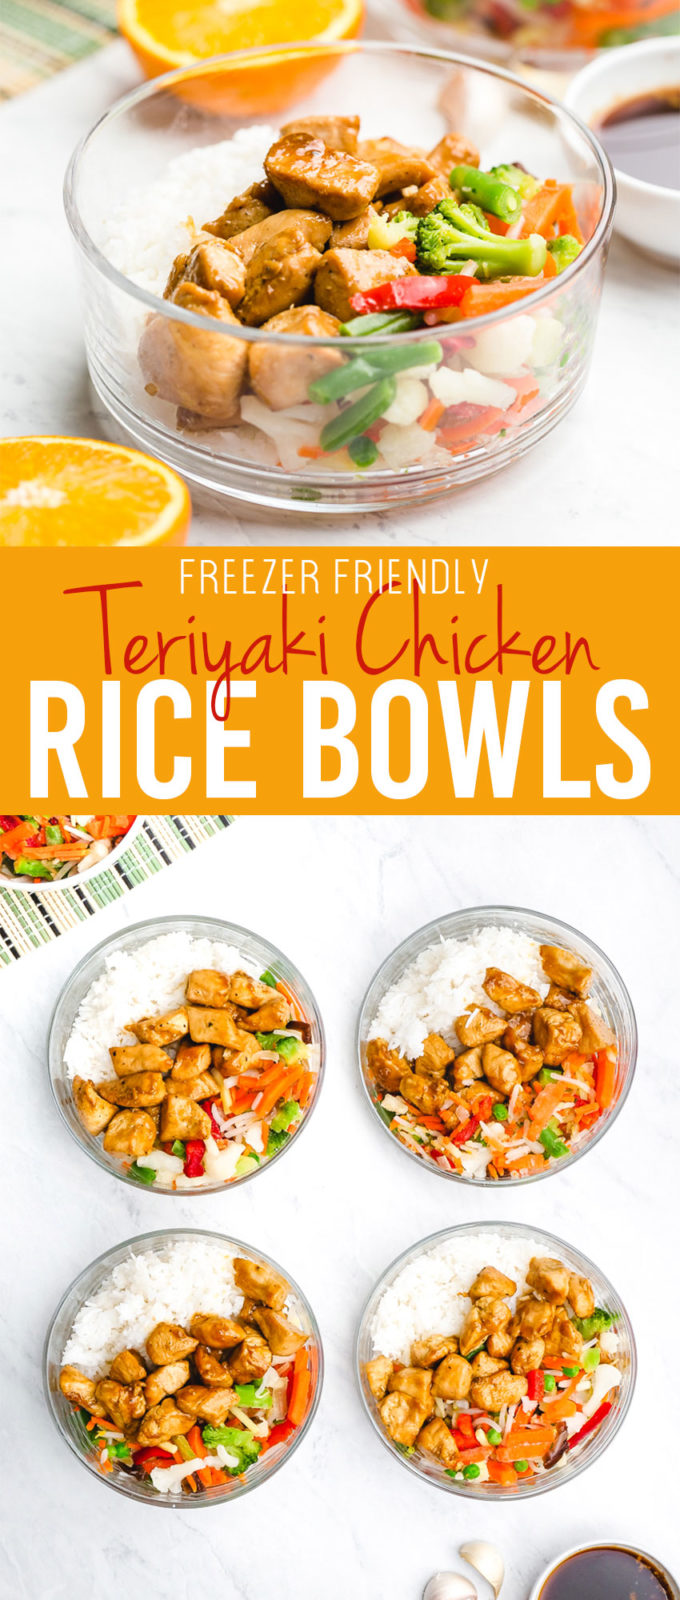 Freezer friendly teriyaki chicken rice bowls are a great plan ahead meal or grab and go meal solution